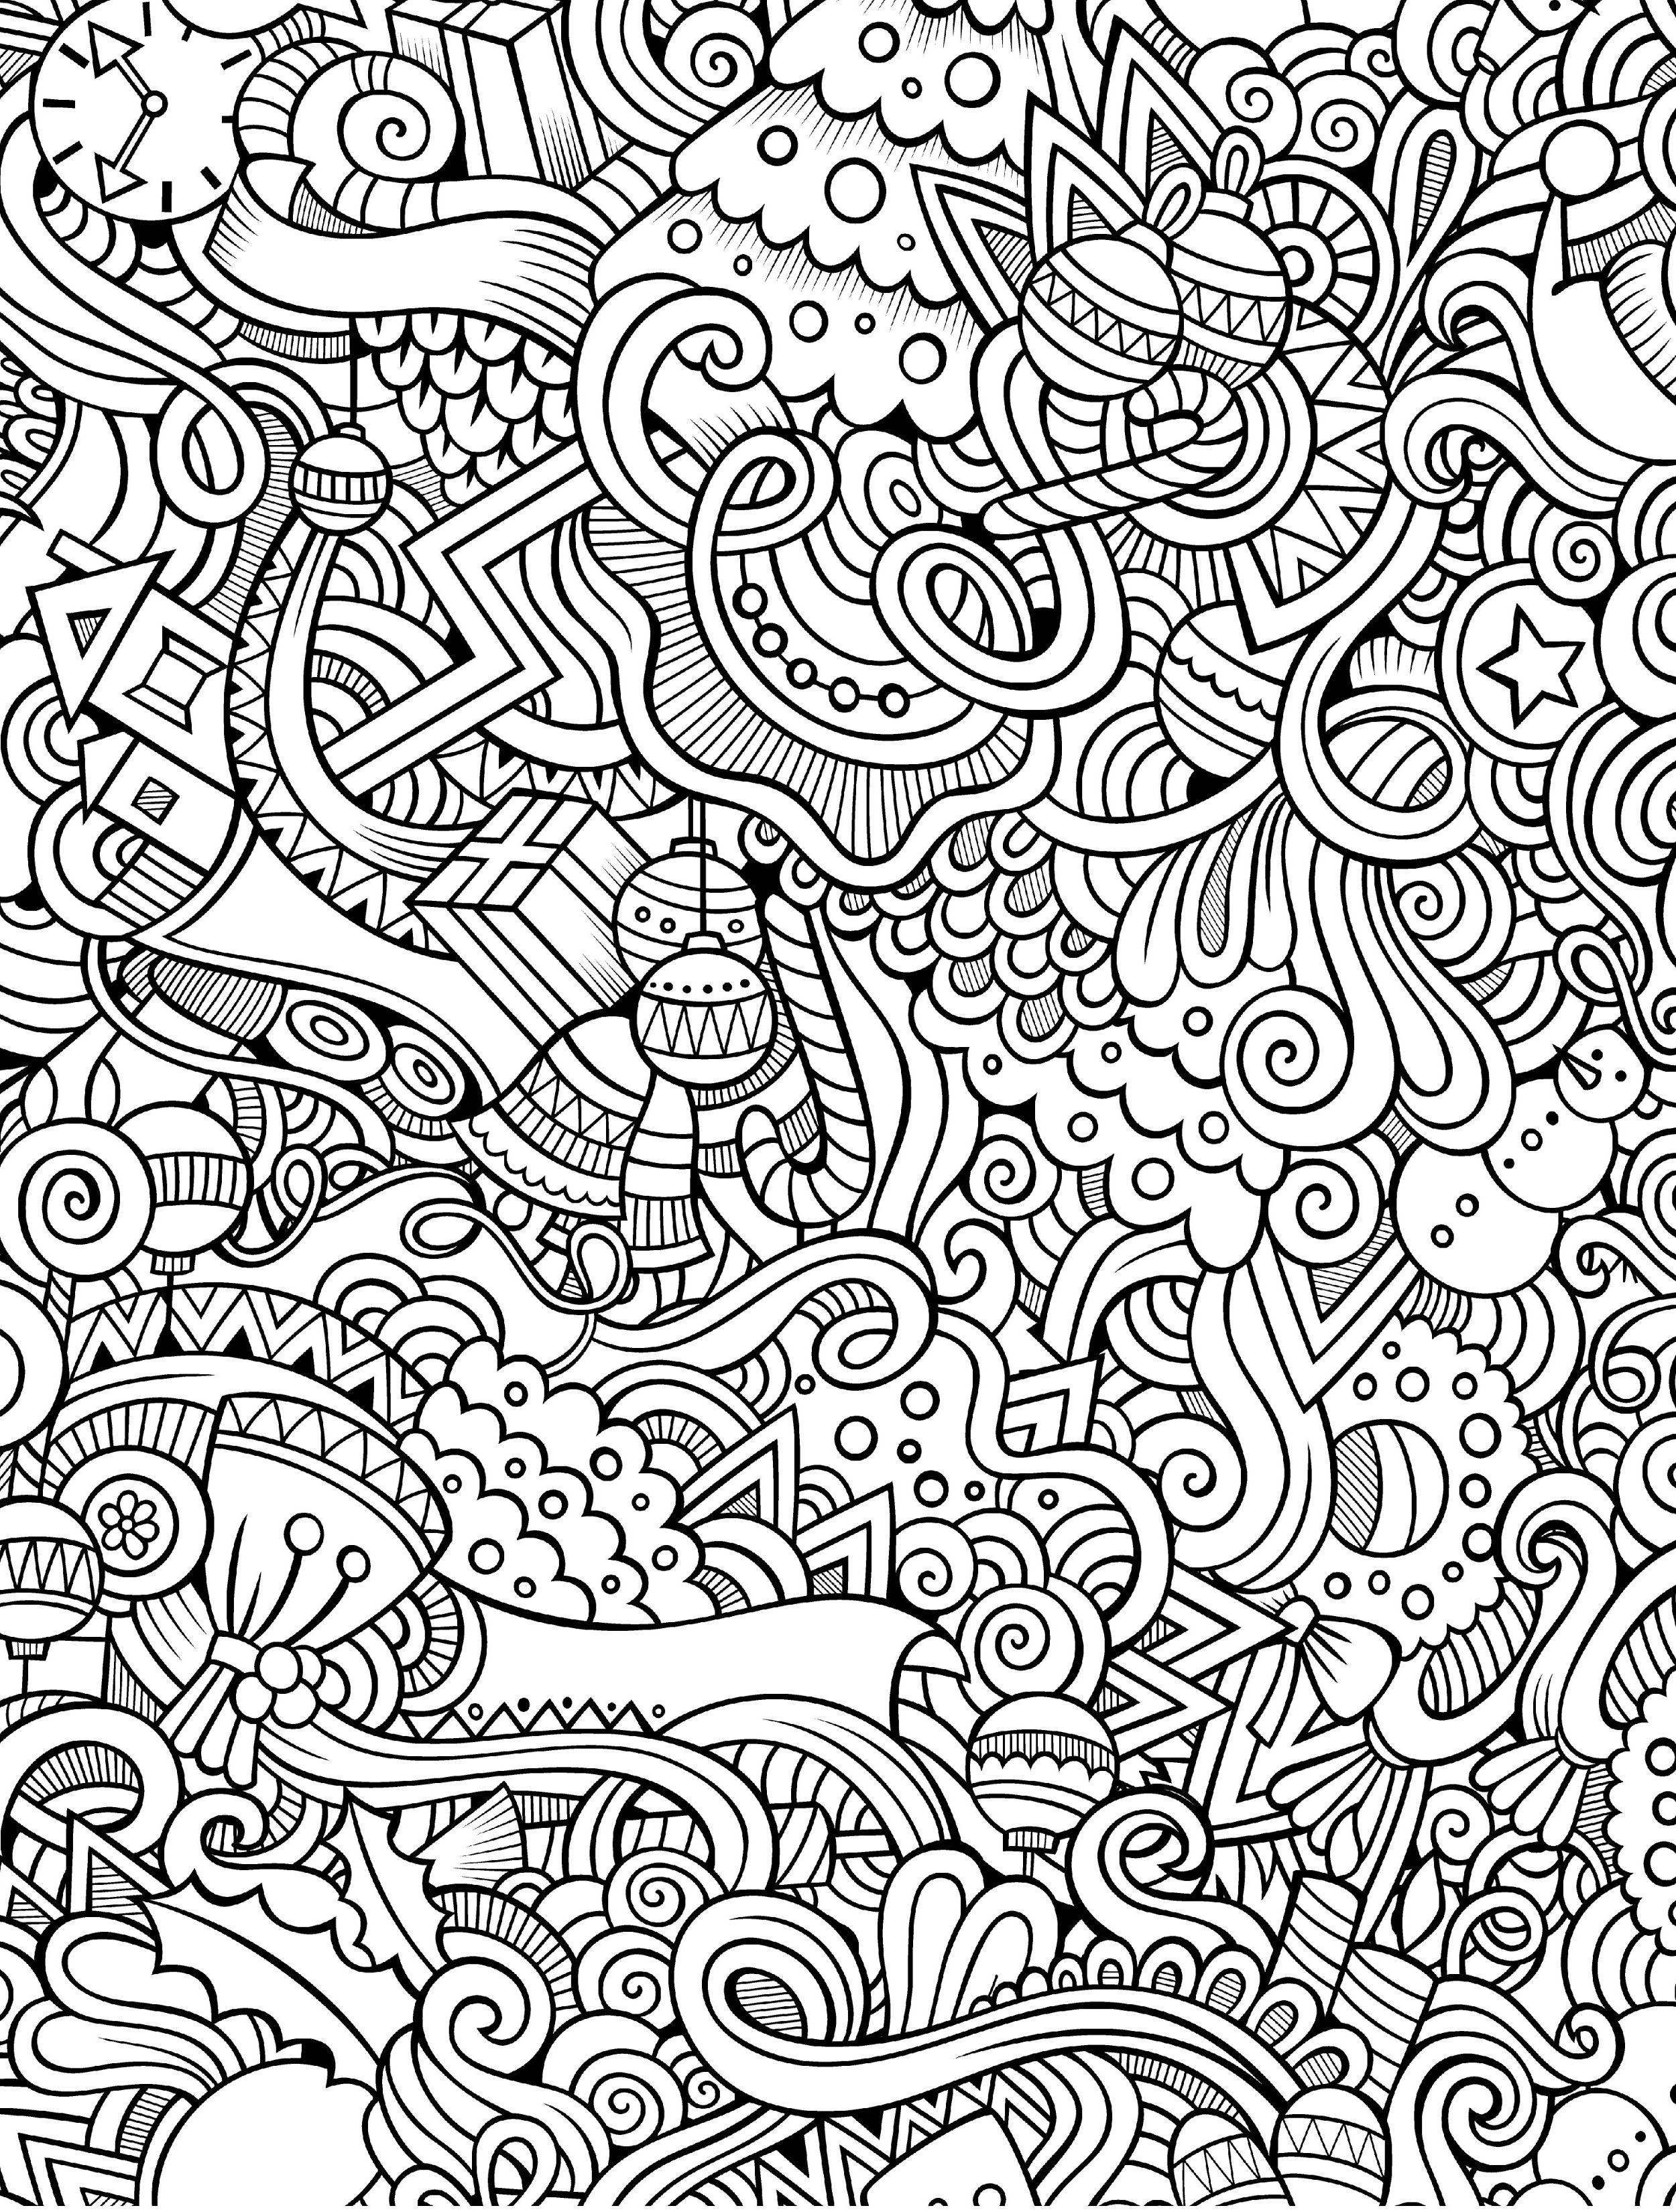 Free Adult Coloring Pages Pdf Coloring Page Free Adult